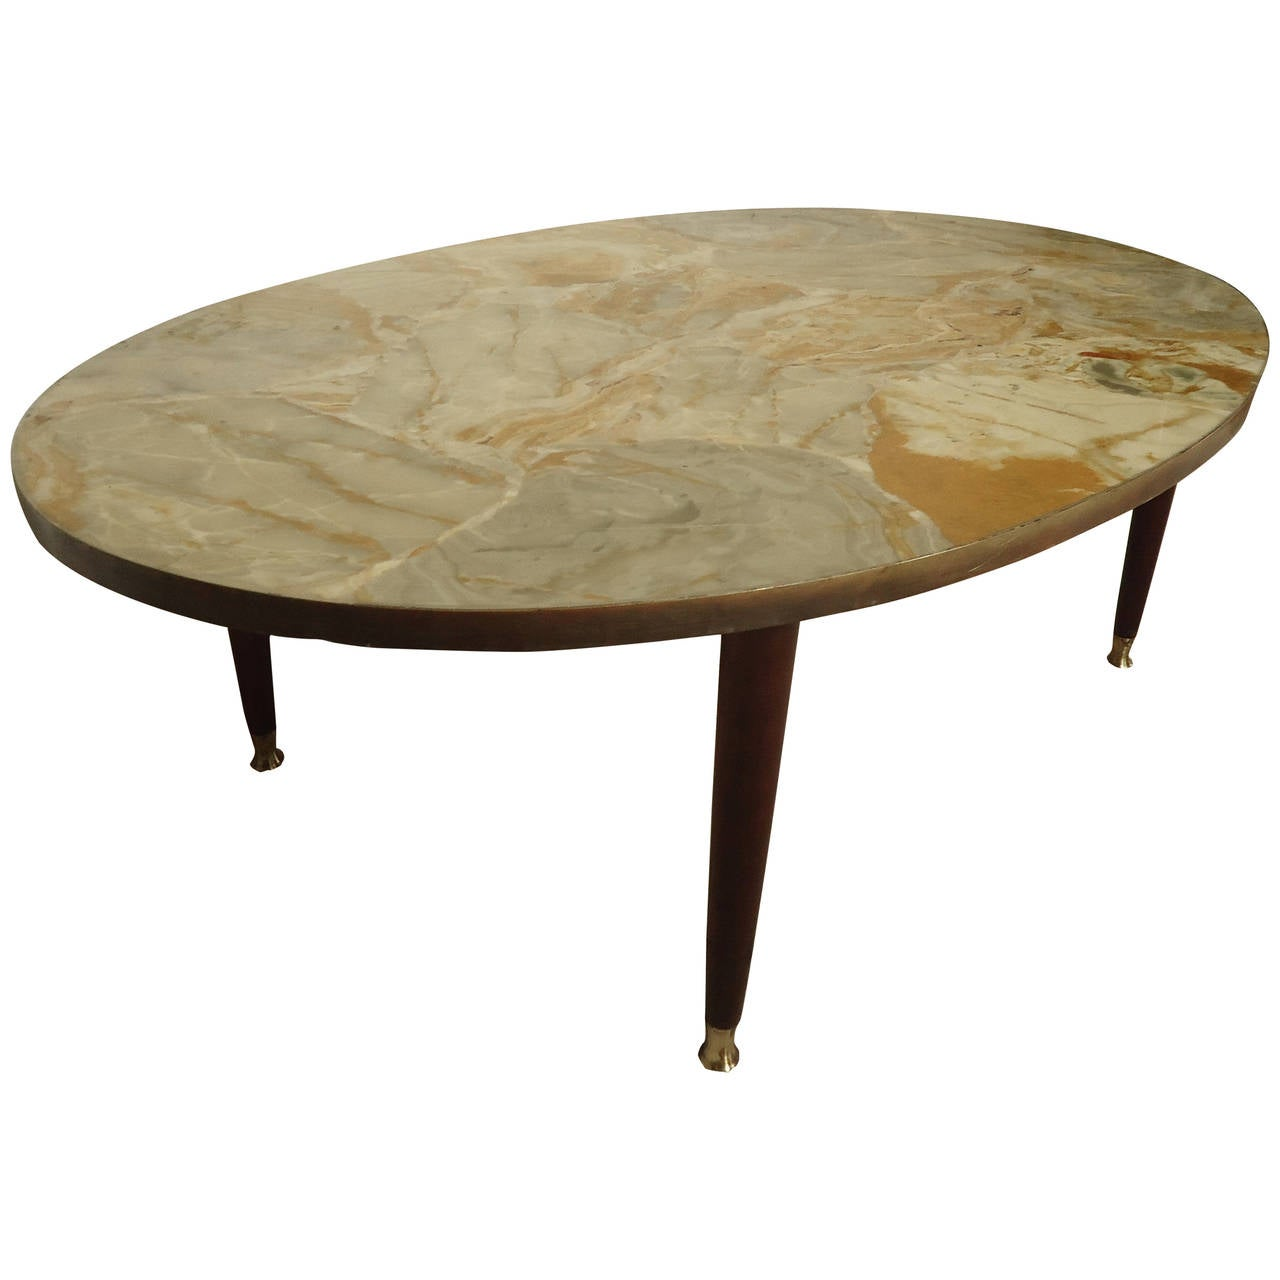 Mid Century Modern Marble Top Coffee Table: Mid-Century Modern Italian Marble-Top Coffee Table For